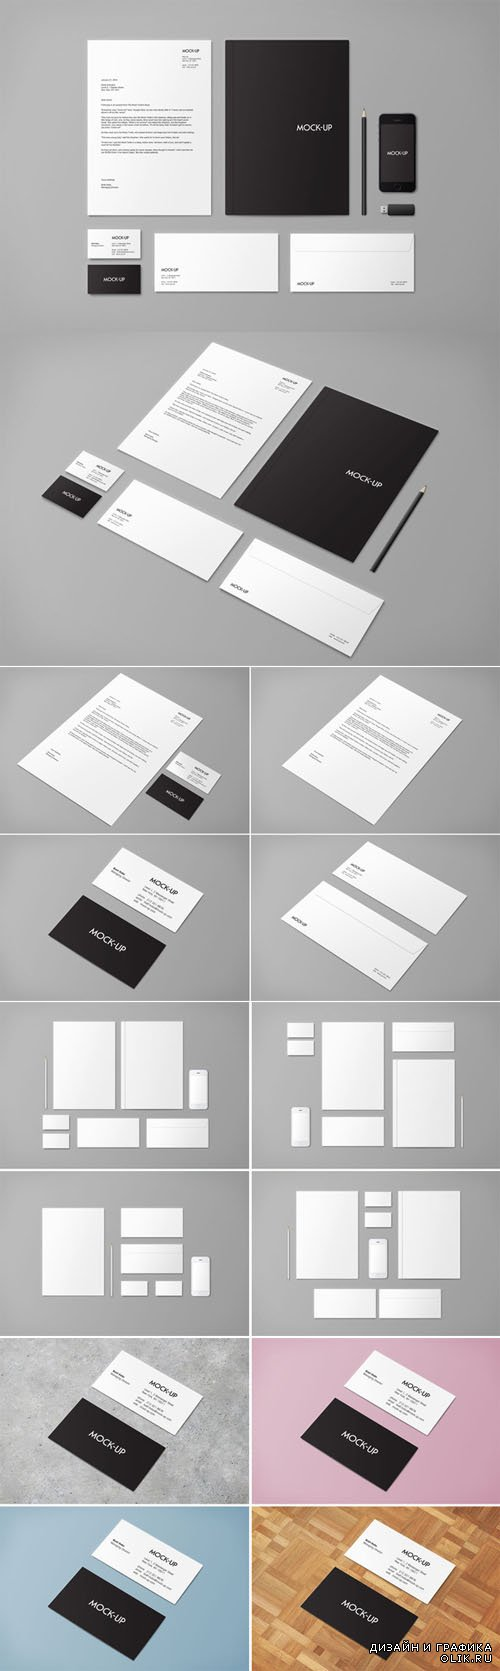 Stationery & Branding Mock-up - Creativemarket 20101